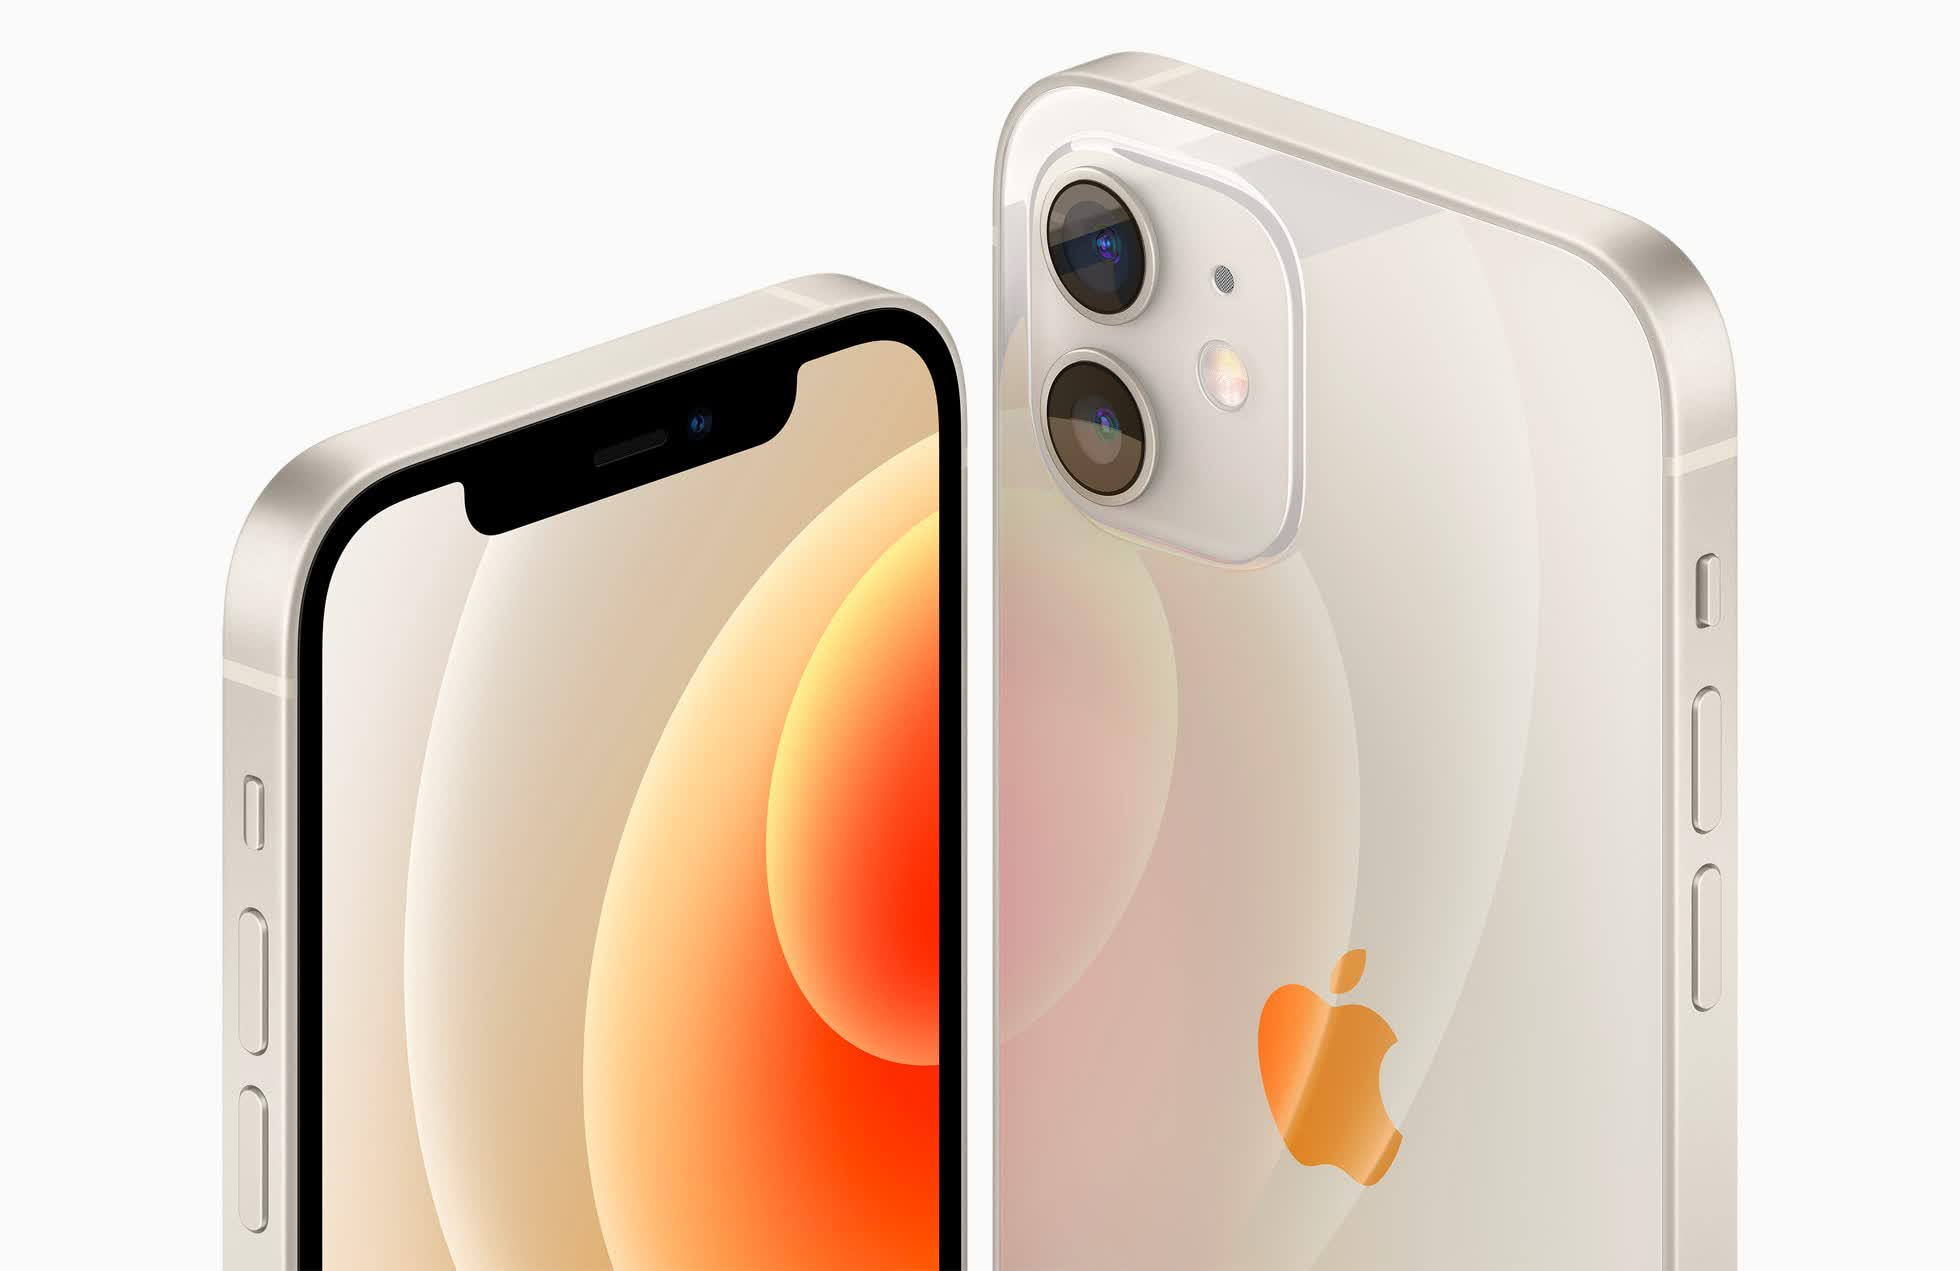 Apple's new iPhone 12 has a smaller battery than the iPhone 11